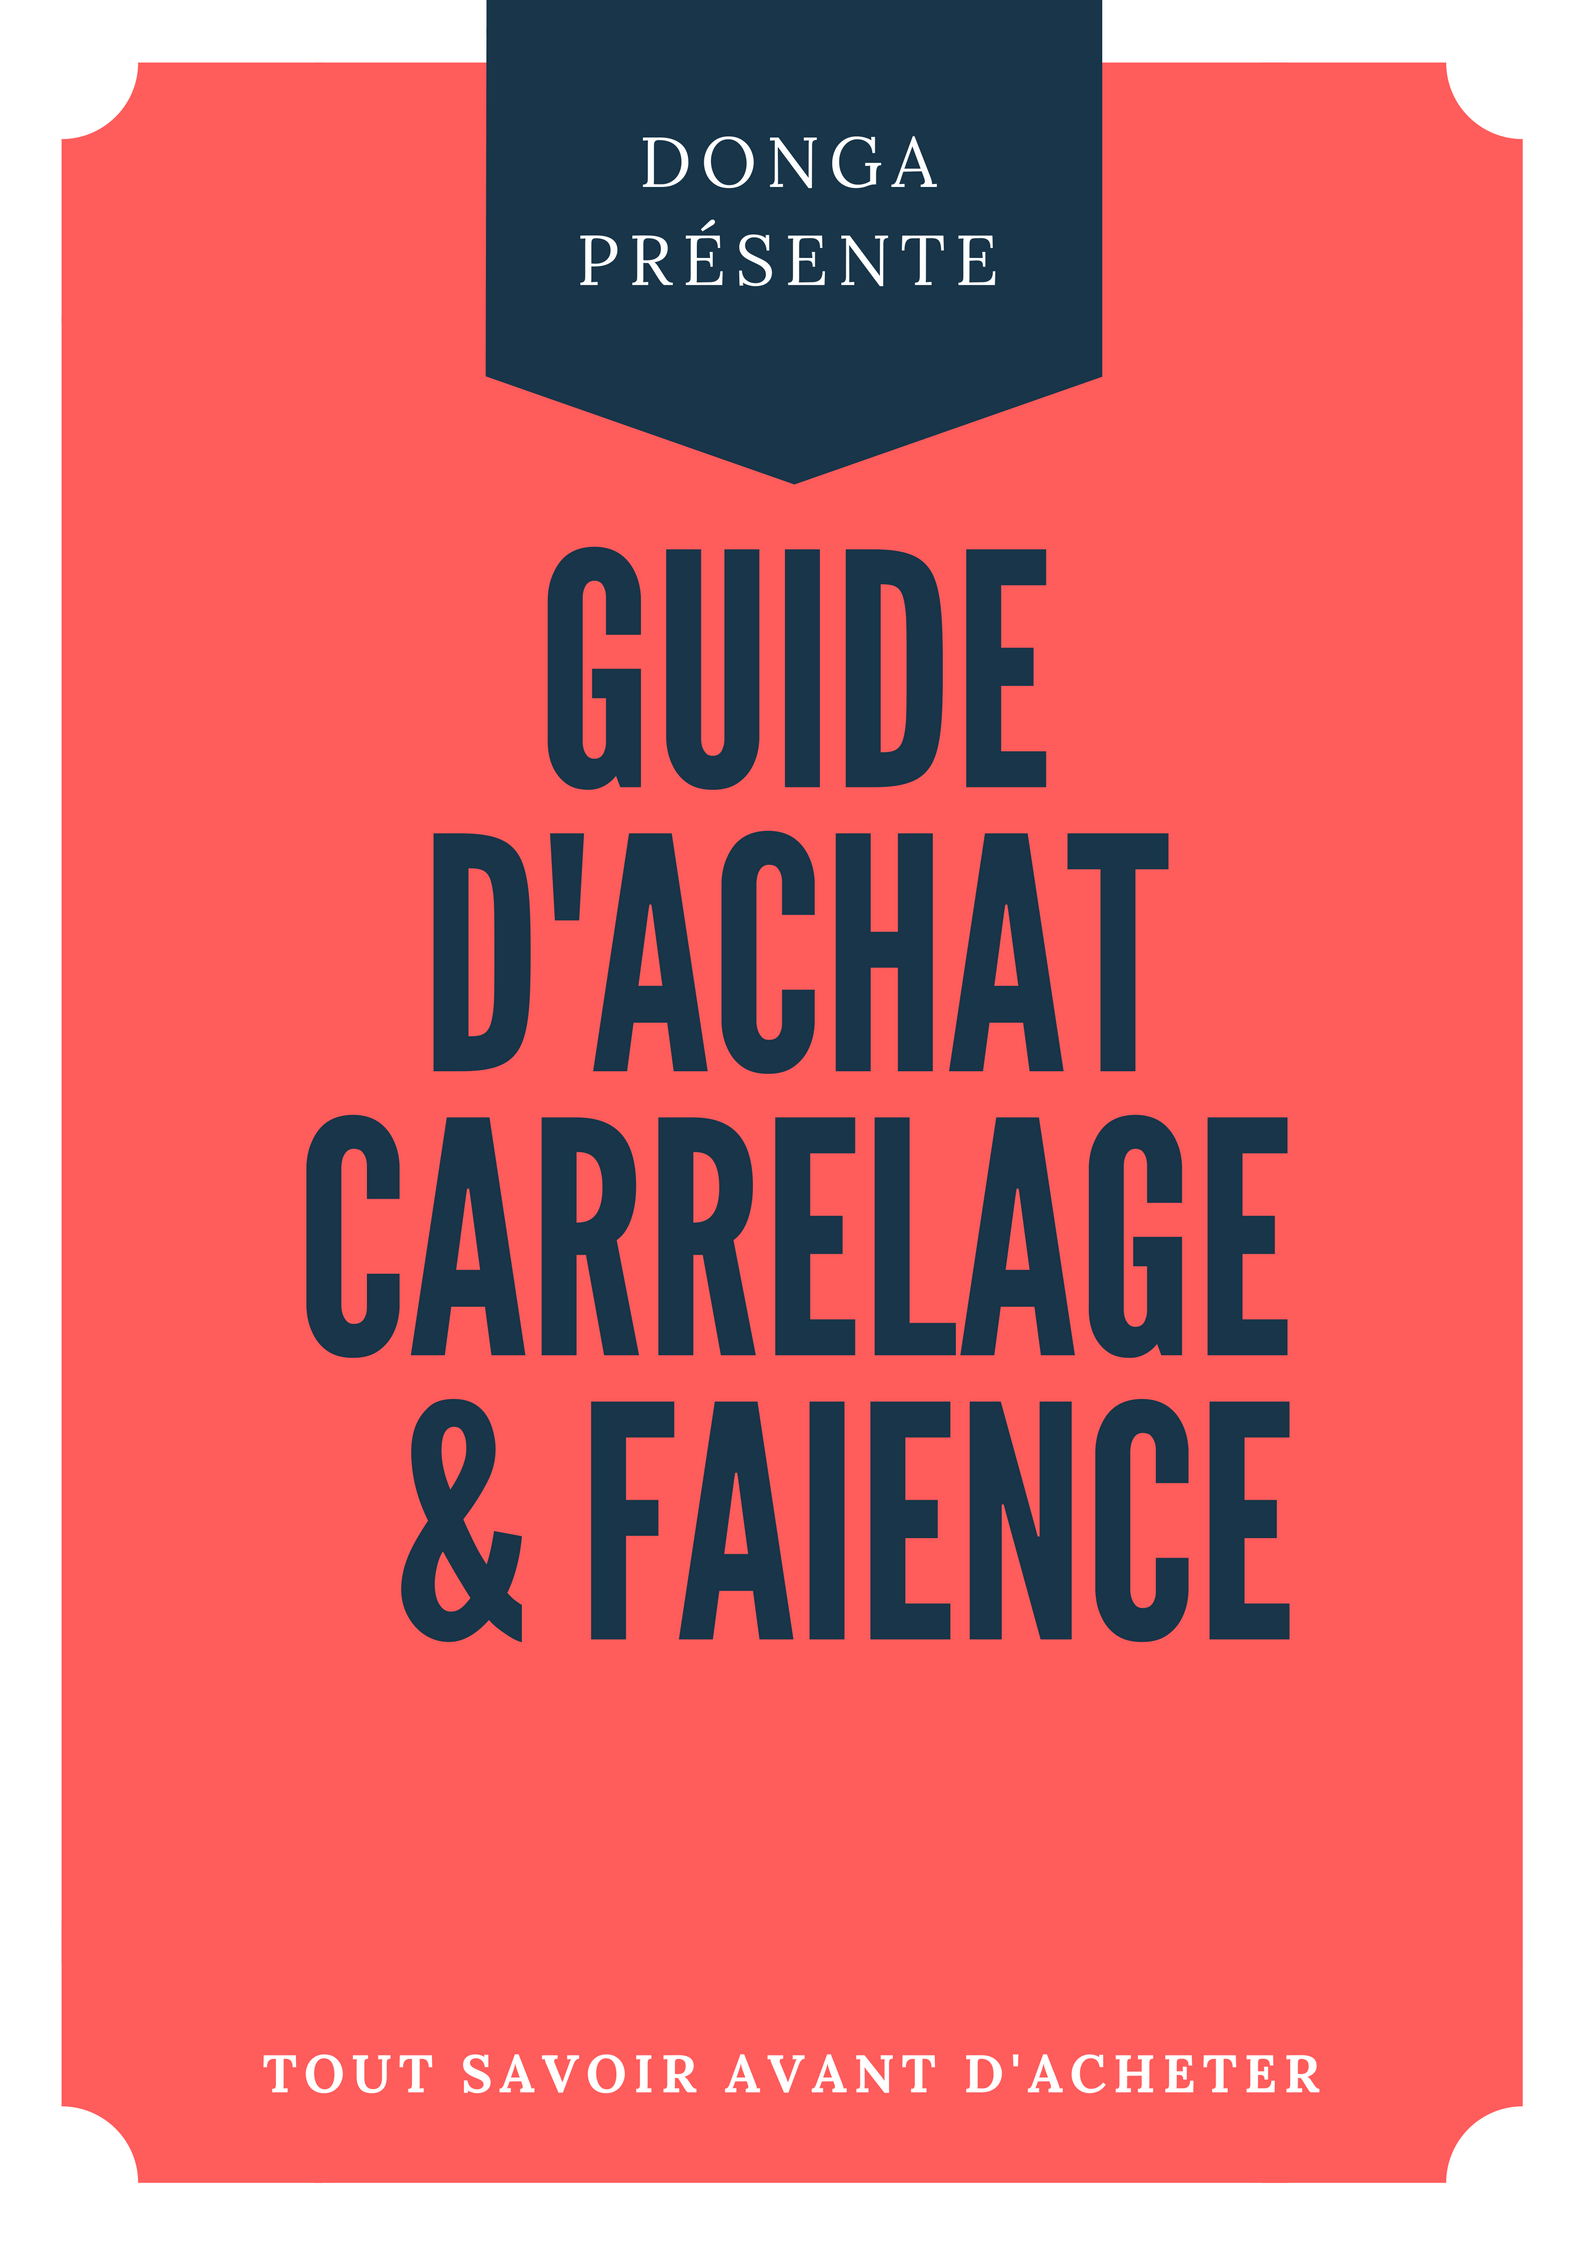 Guide D Achat Carrelage Pas Cher Donga Carrelage